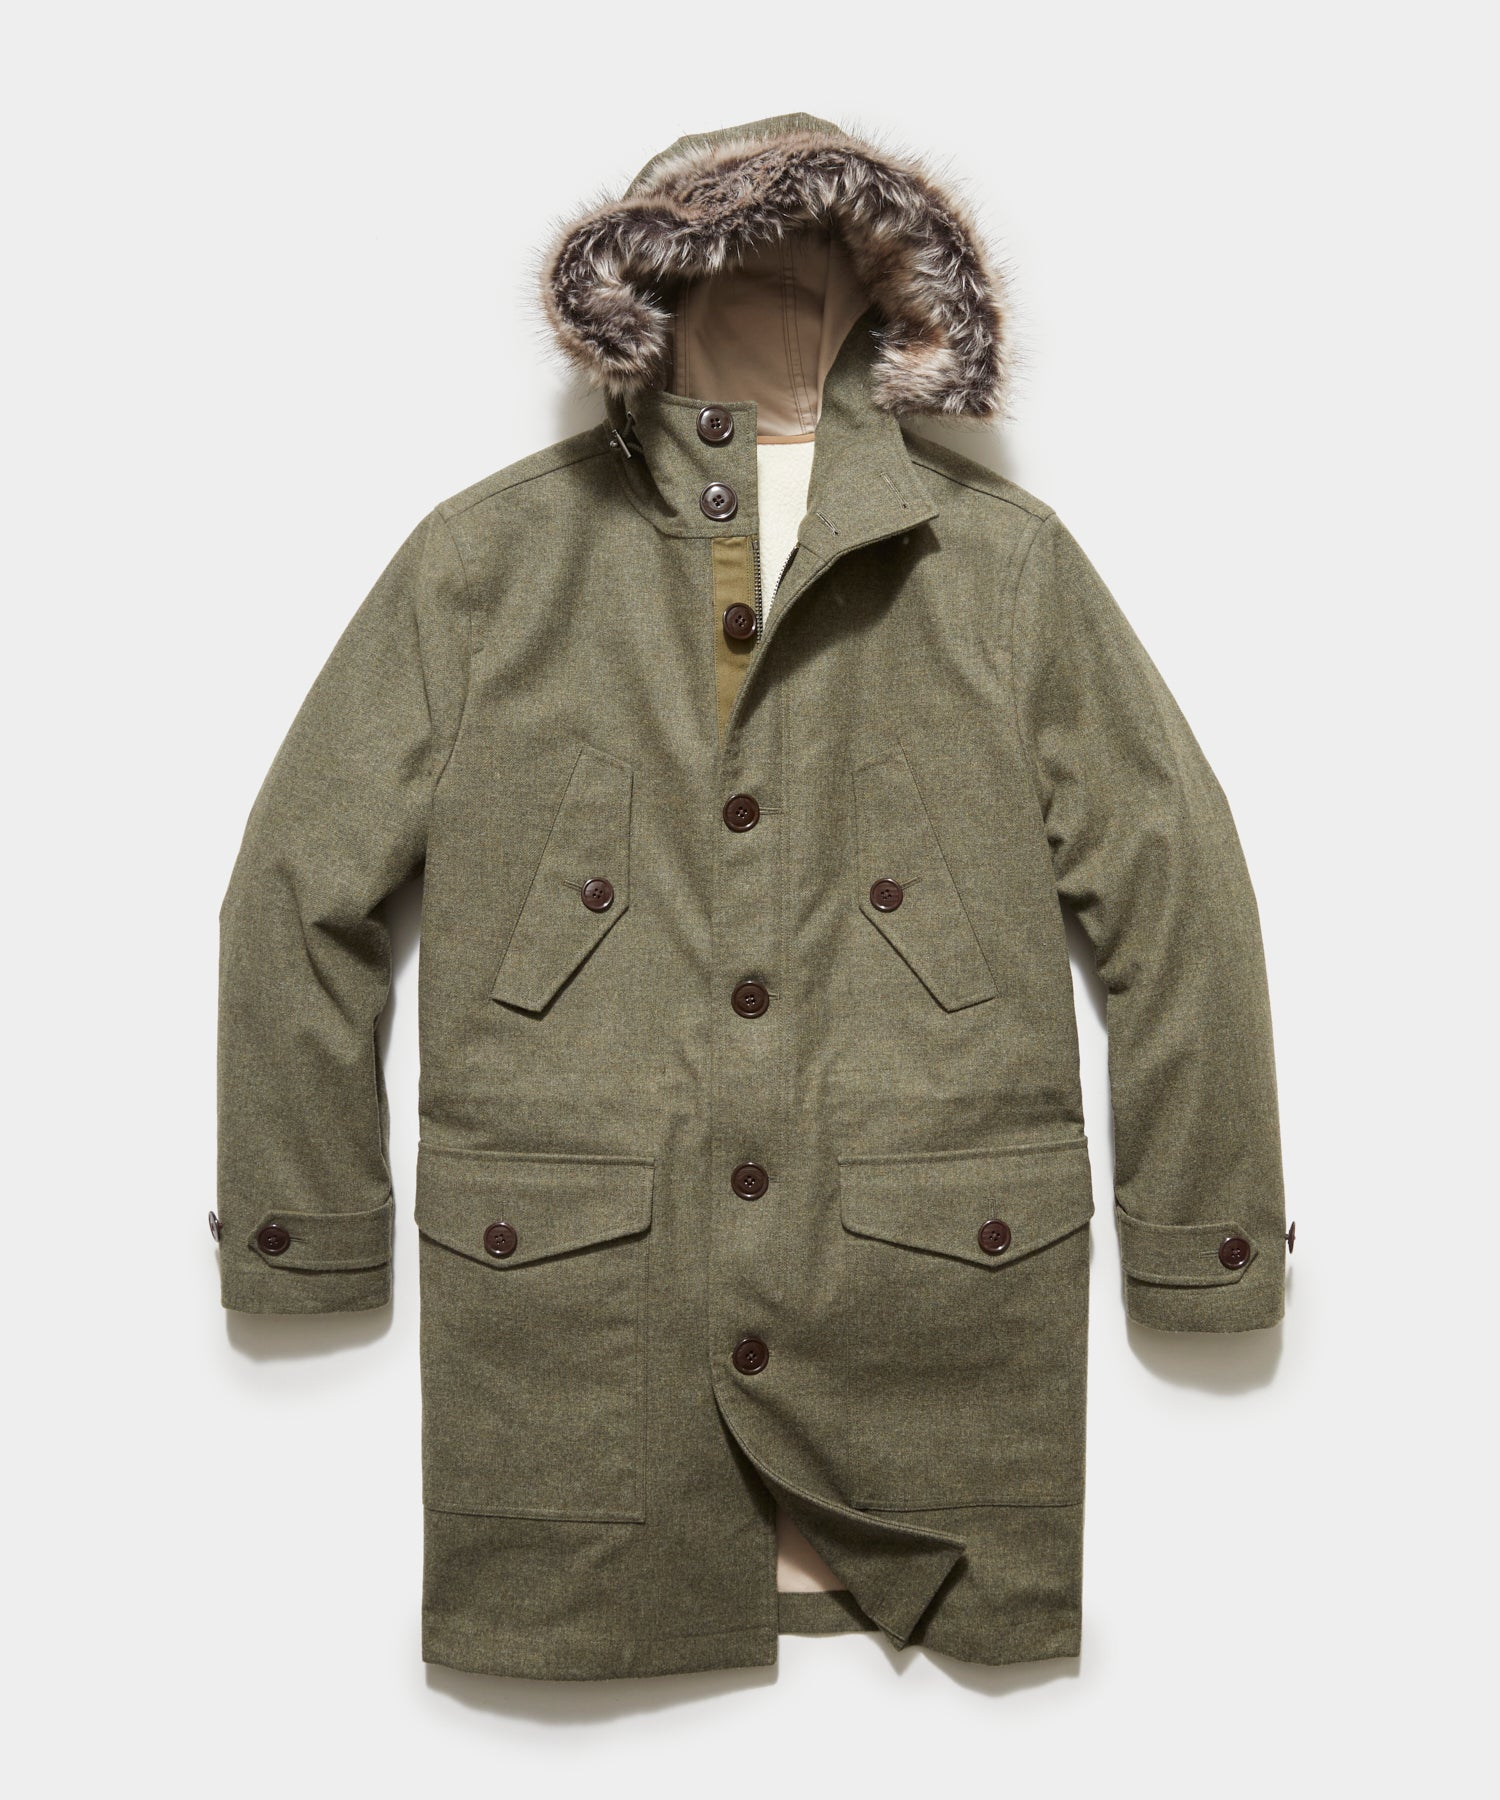 3-1 Wool Parka In Dusty Olive